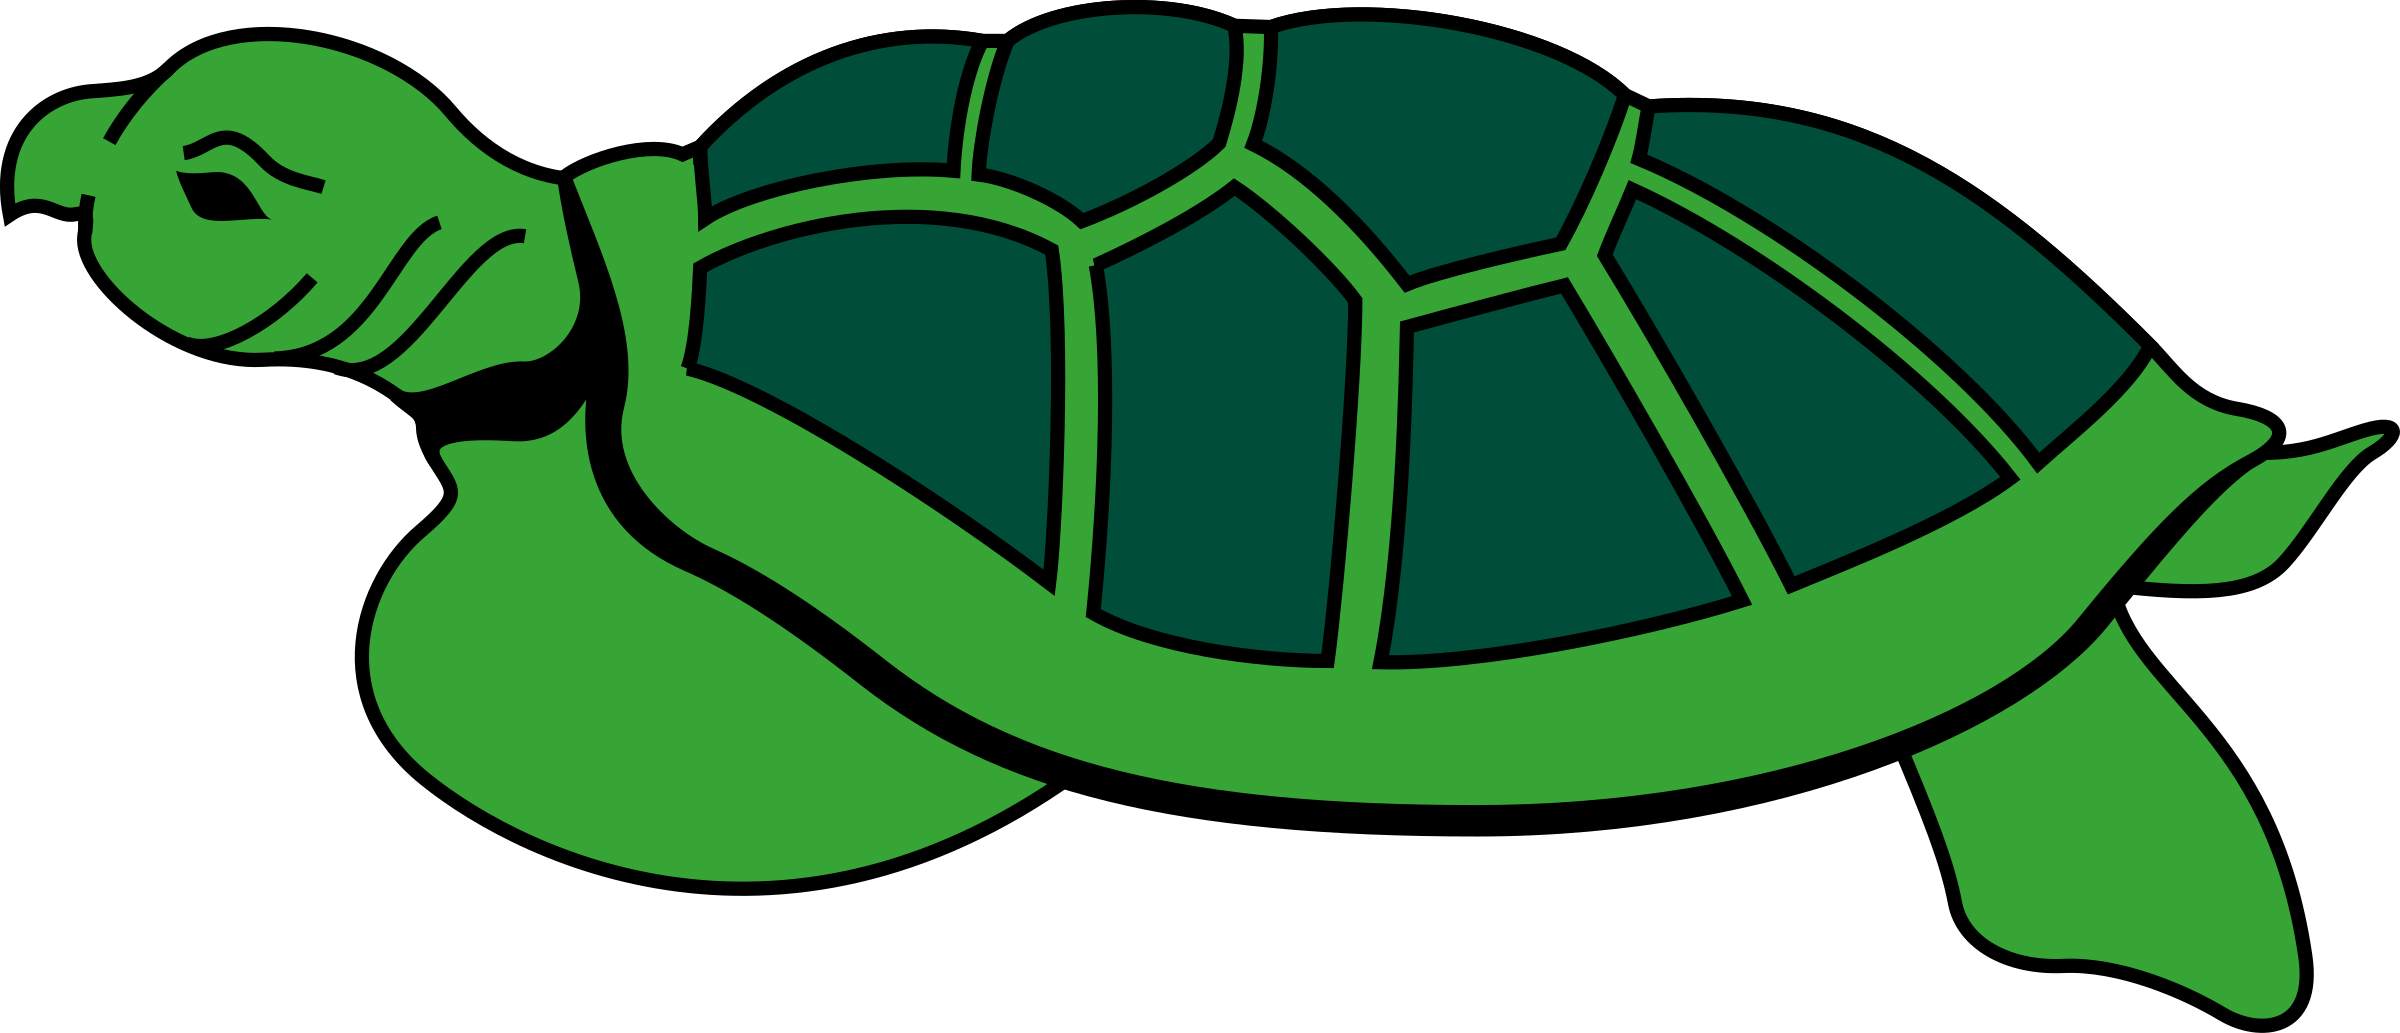 Turtle 2 by Firkin